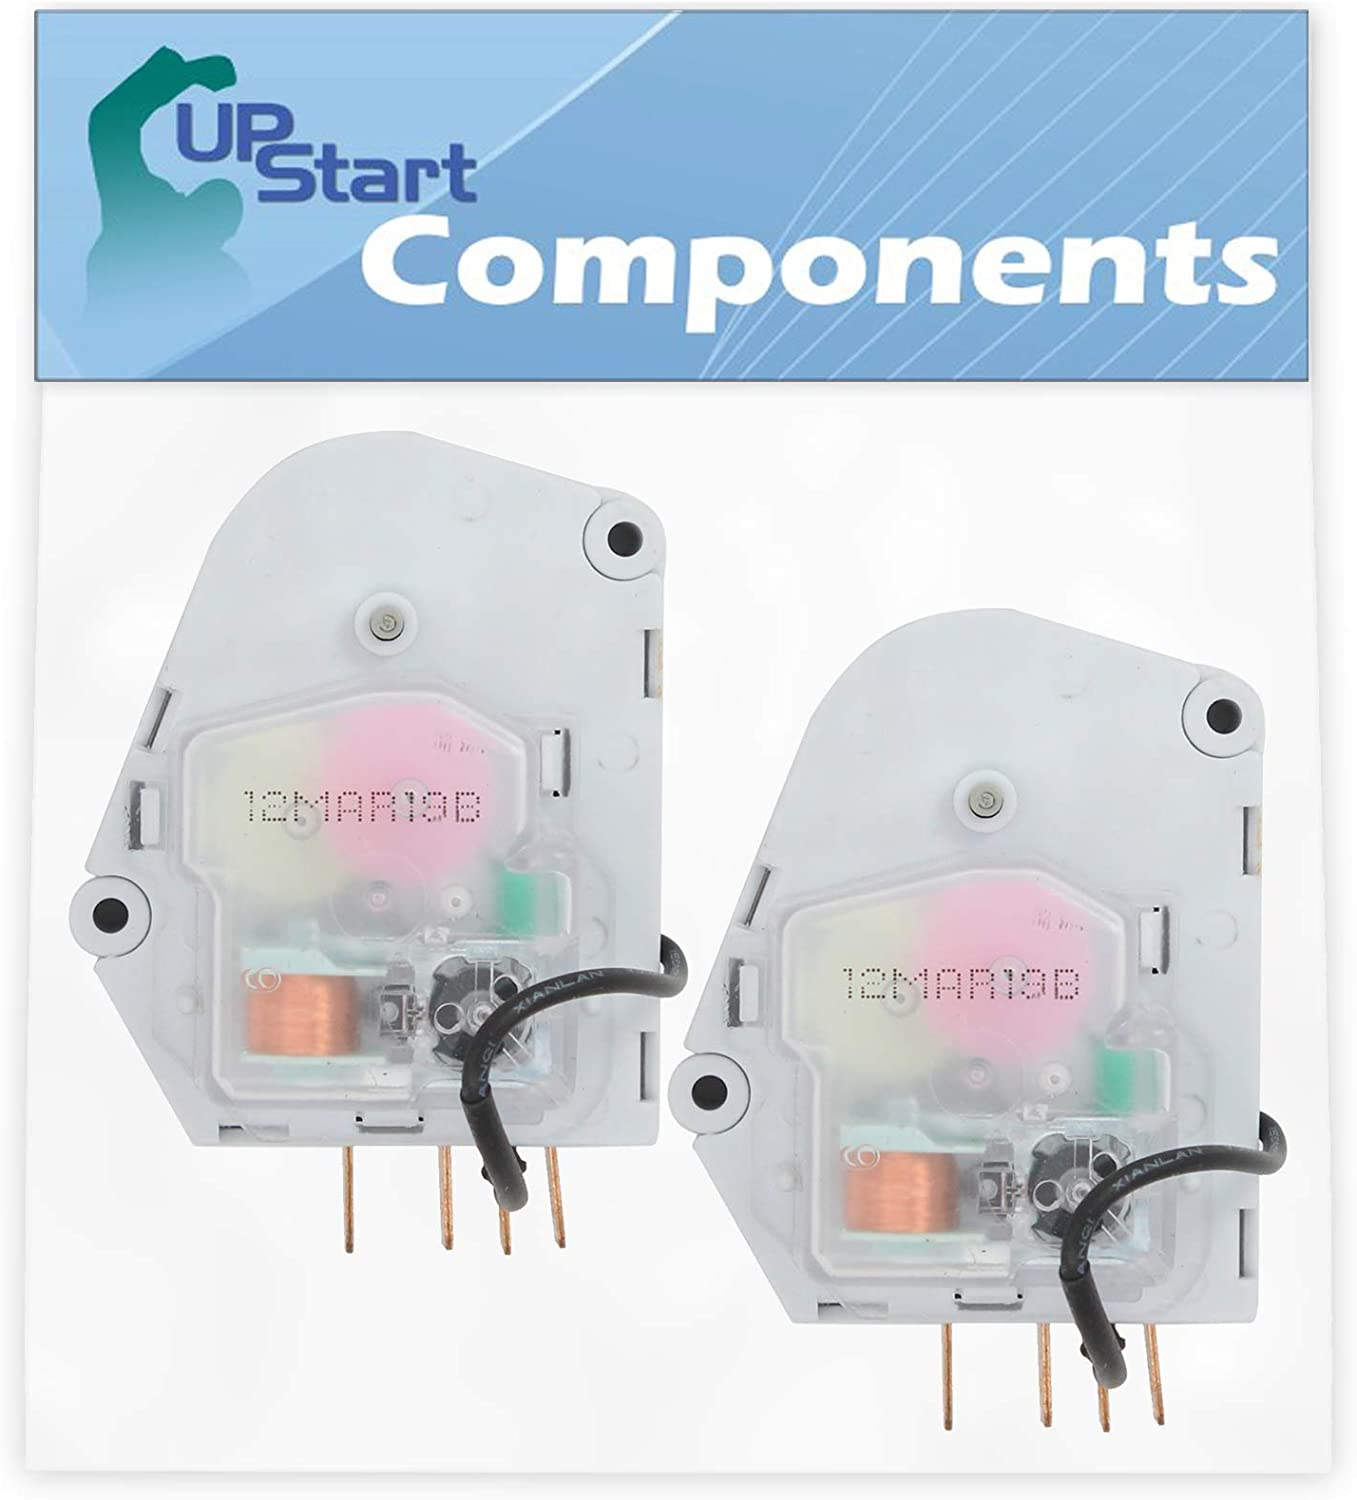 2-Pack W10822278 Refrigerator Defrost Timer Replacement for Estate TS22CFXTQ00 Refrigerator - Compatible with 482493 Defrost Timer - UpStart Components Brand